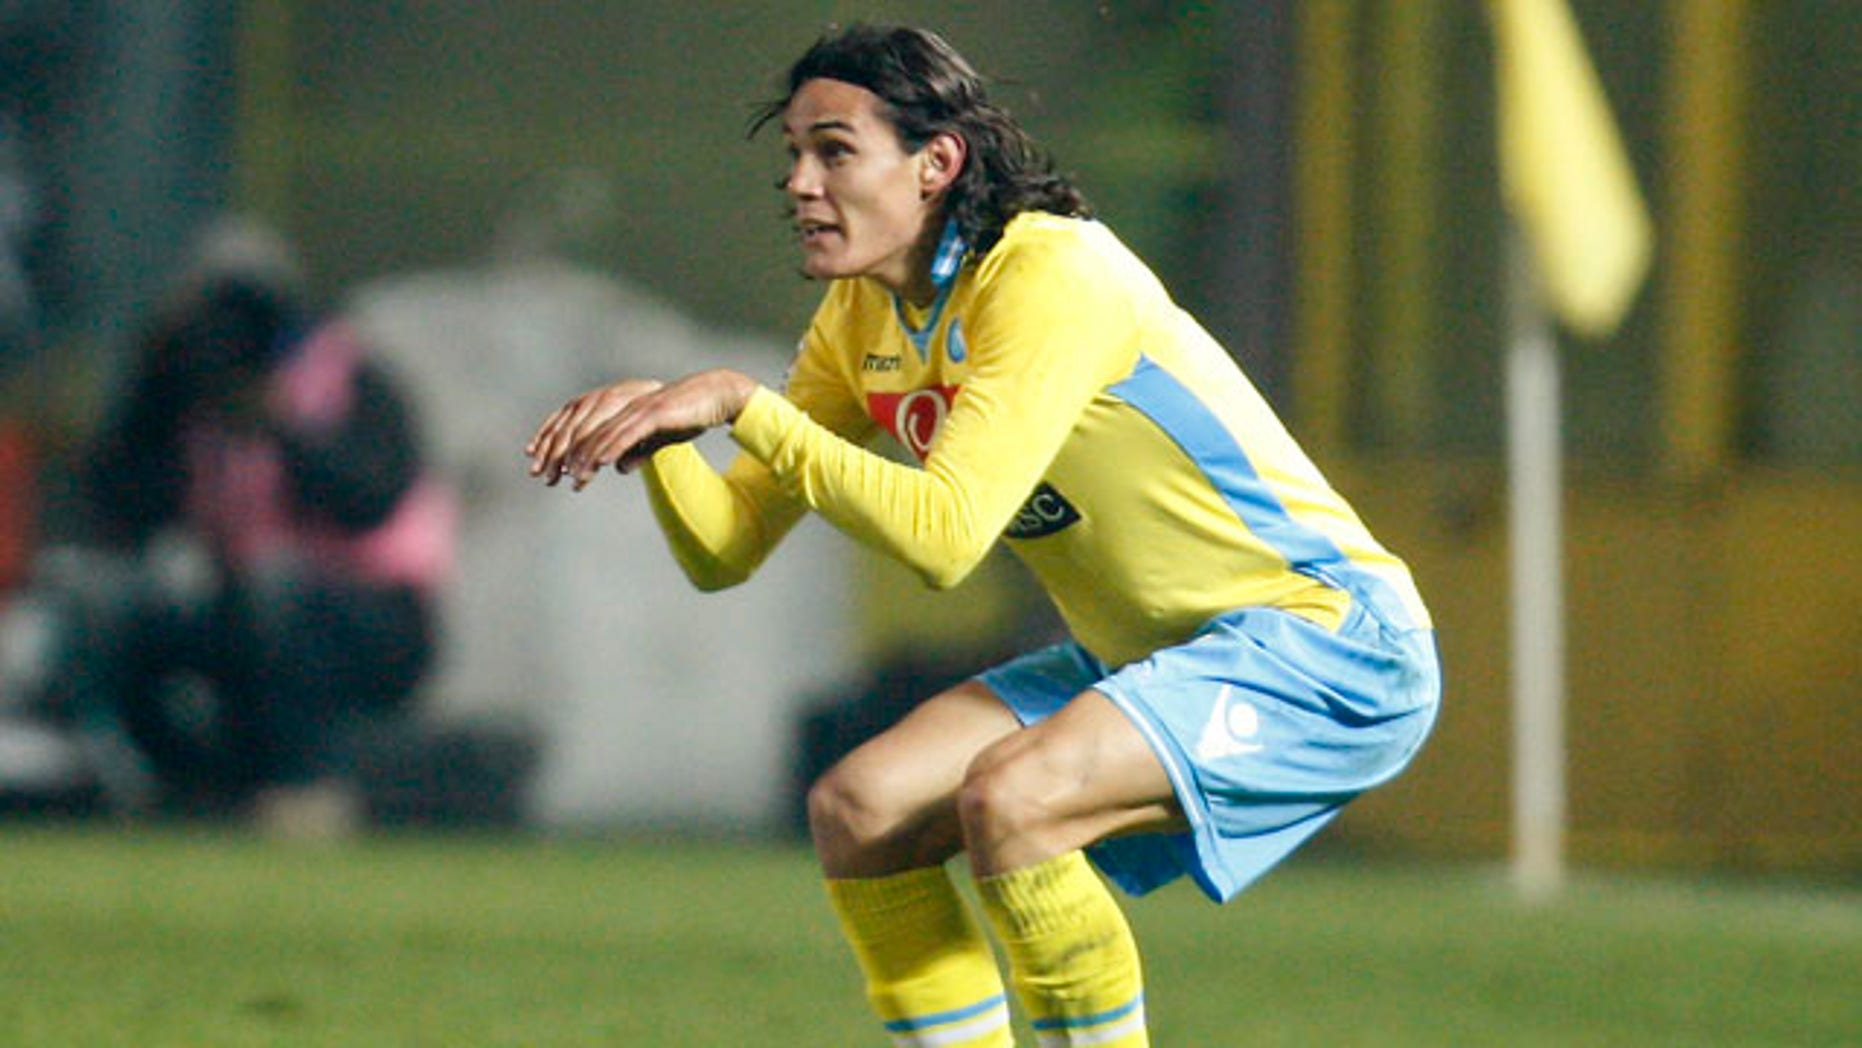 Napoli forward Edinson Cavani, of Uruguay, celebrates after scoring a last minute equalizer during the Serie A soccer match between Atalanta and Napoli in Bergamo, Italy, Saturday, Nov. 26, 2011. The match ended in a 1 - 1 tie. (AP Photo/Antonio Calanni)